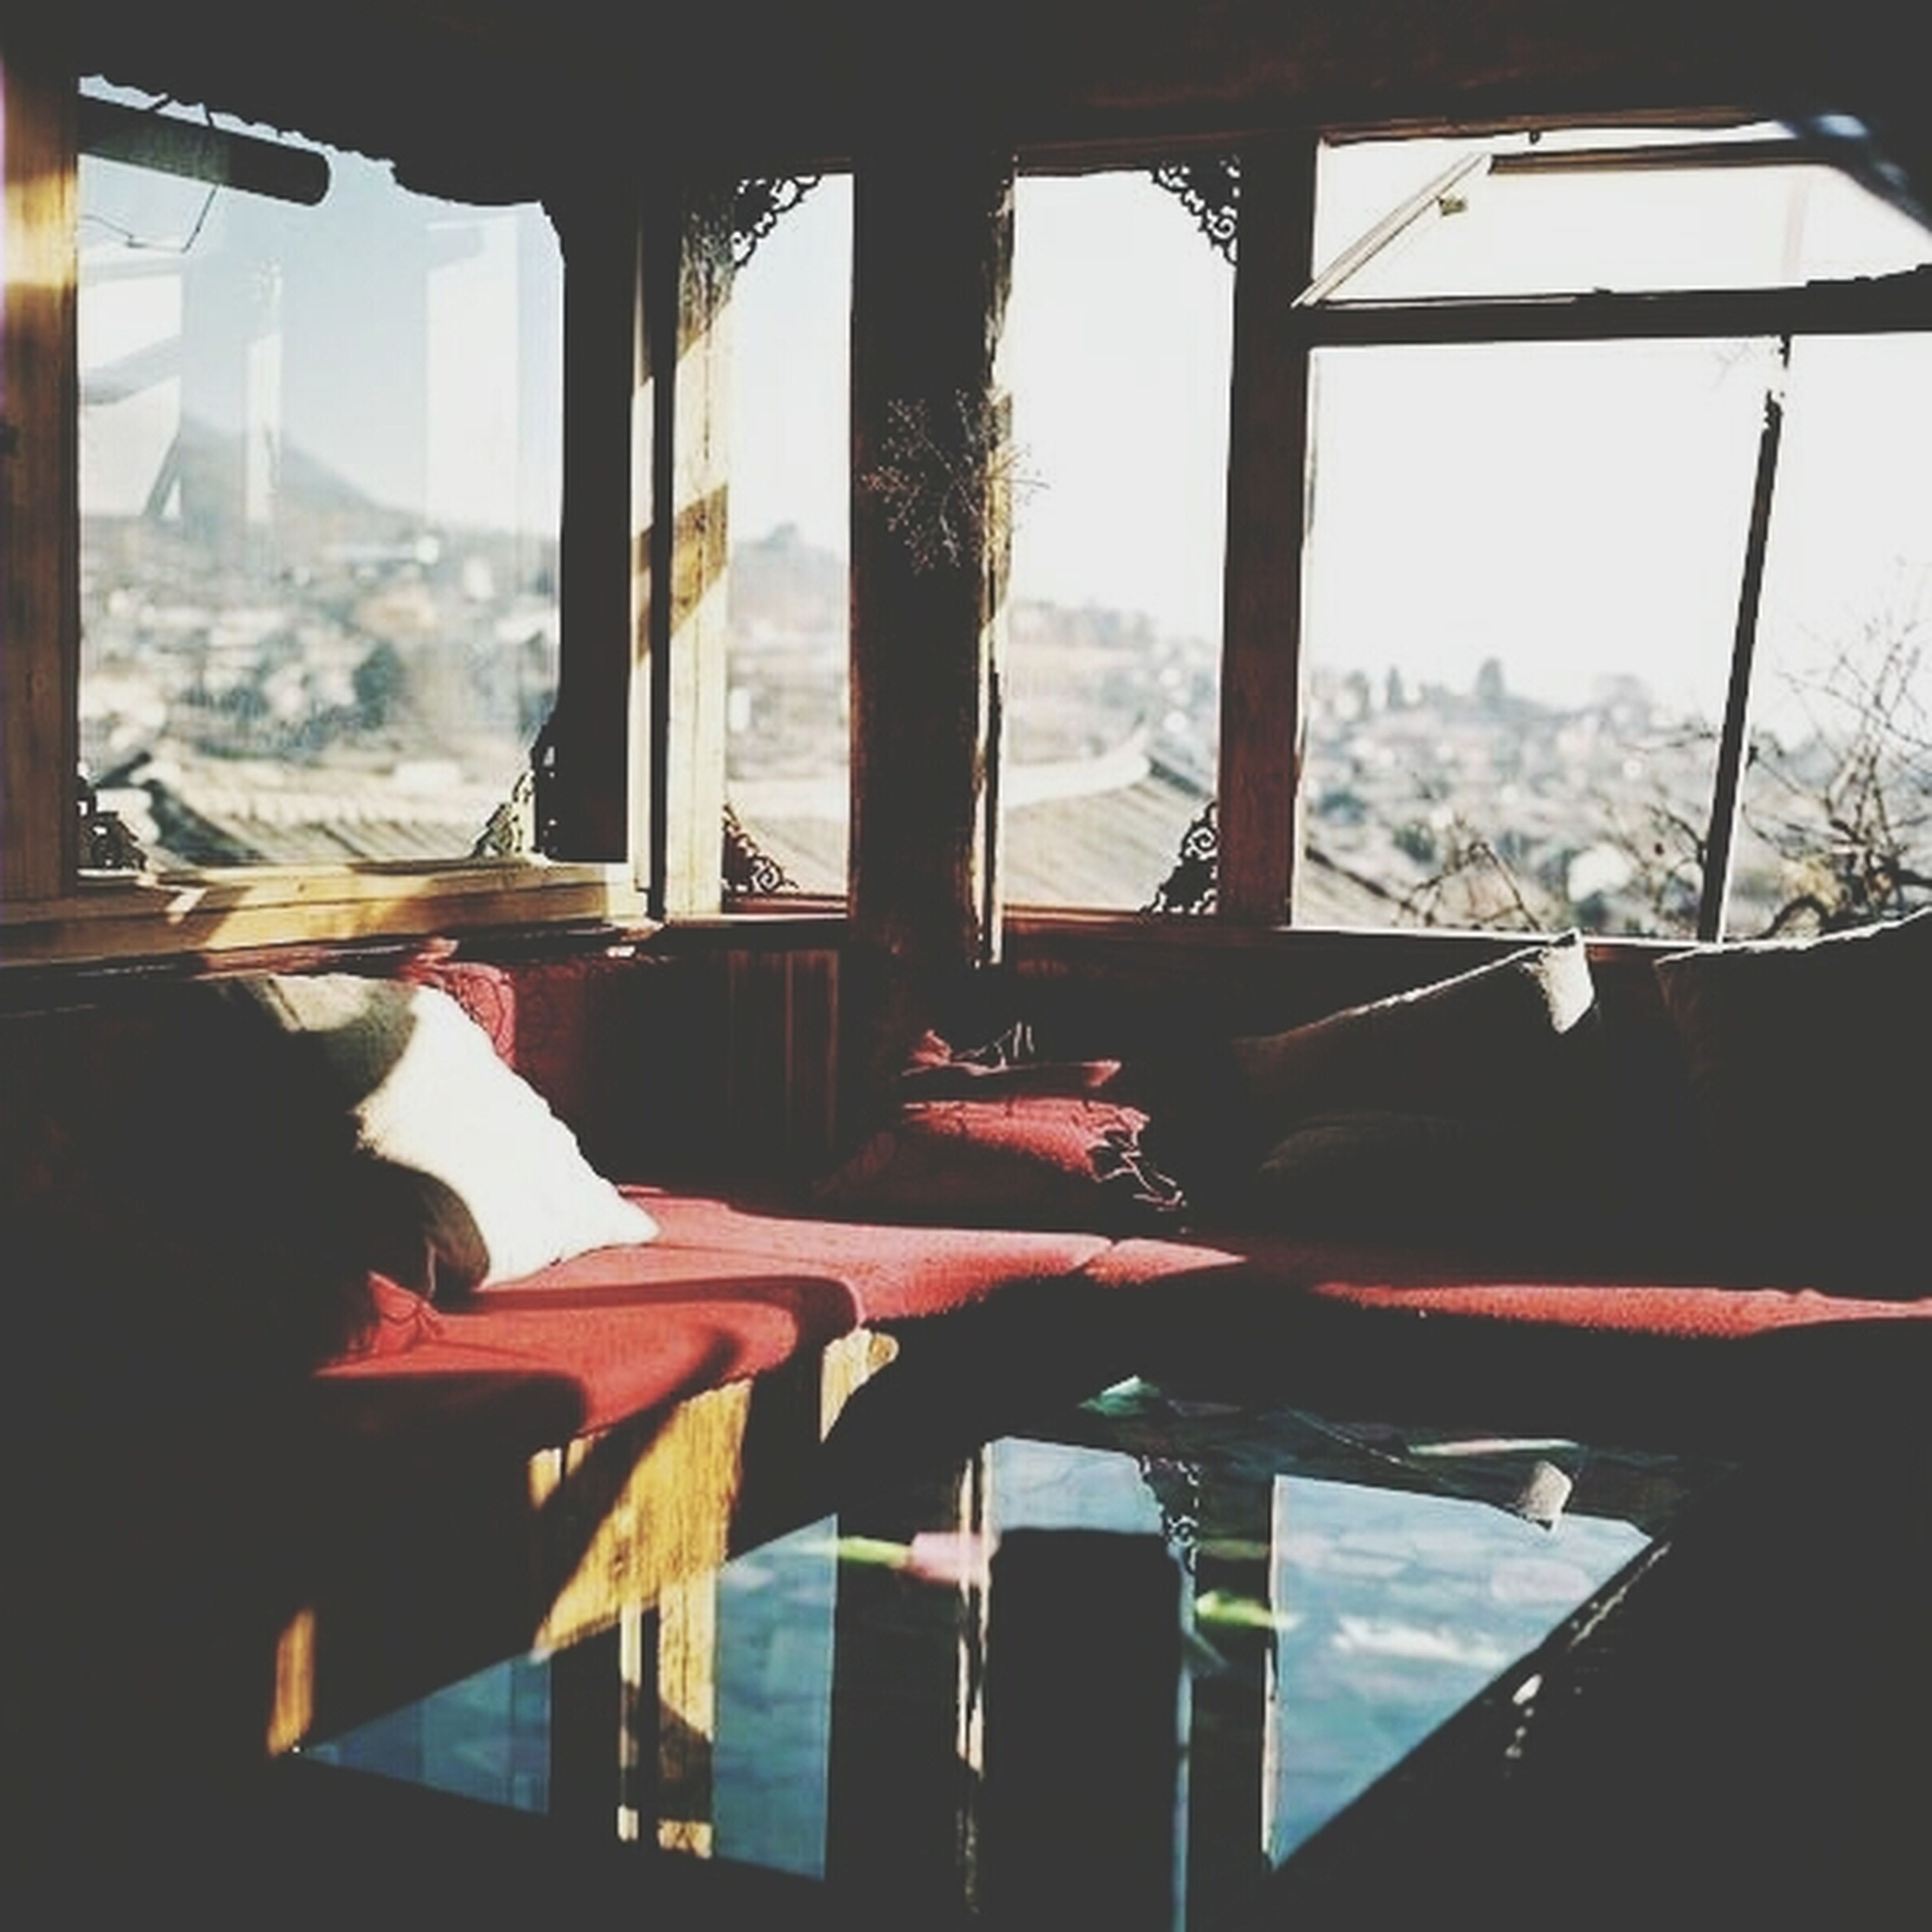 indoors, window, glass - material, transparent, table, restaurant, chair, sitting, glass, looking through window, home interior, vehicle interior, reflection, lifestyles, drinking glass, relaxation, day, sunlight